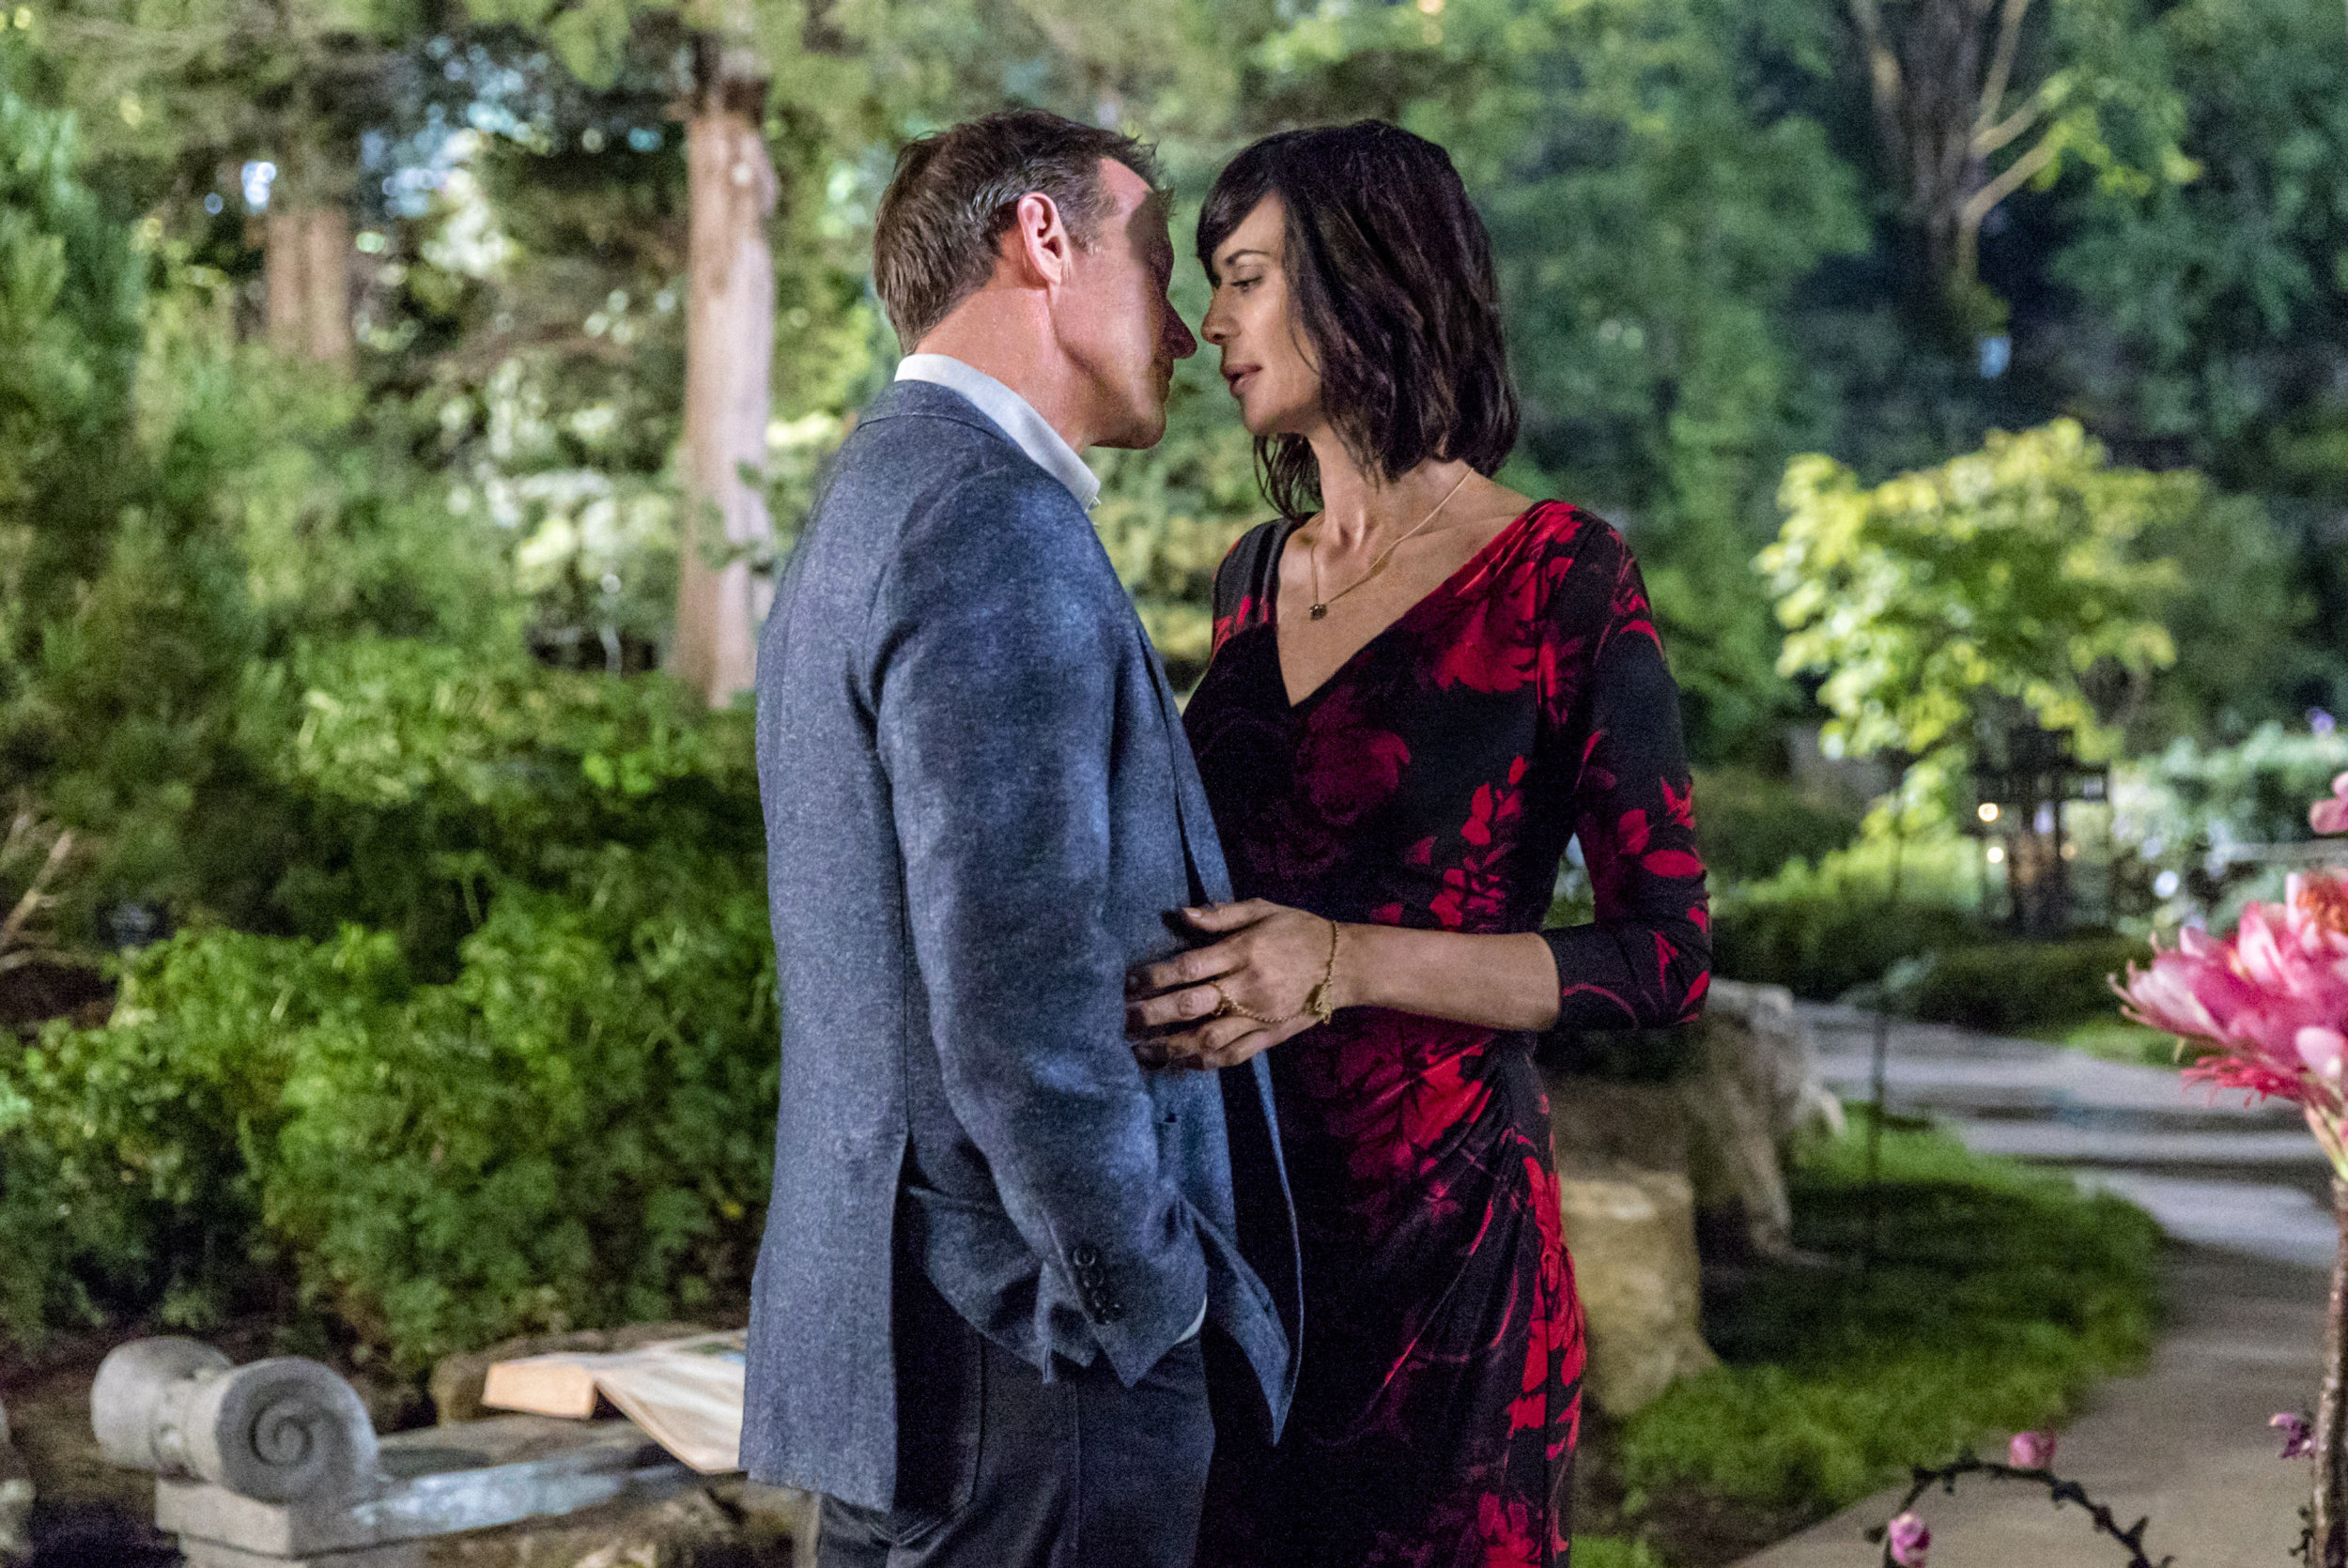 day05-goodwitch3-ep304-raw-0204-cb